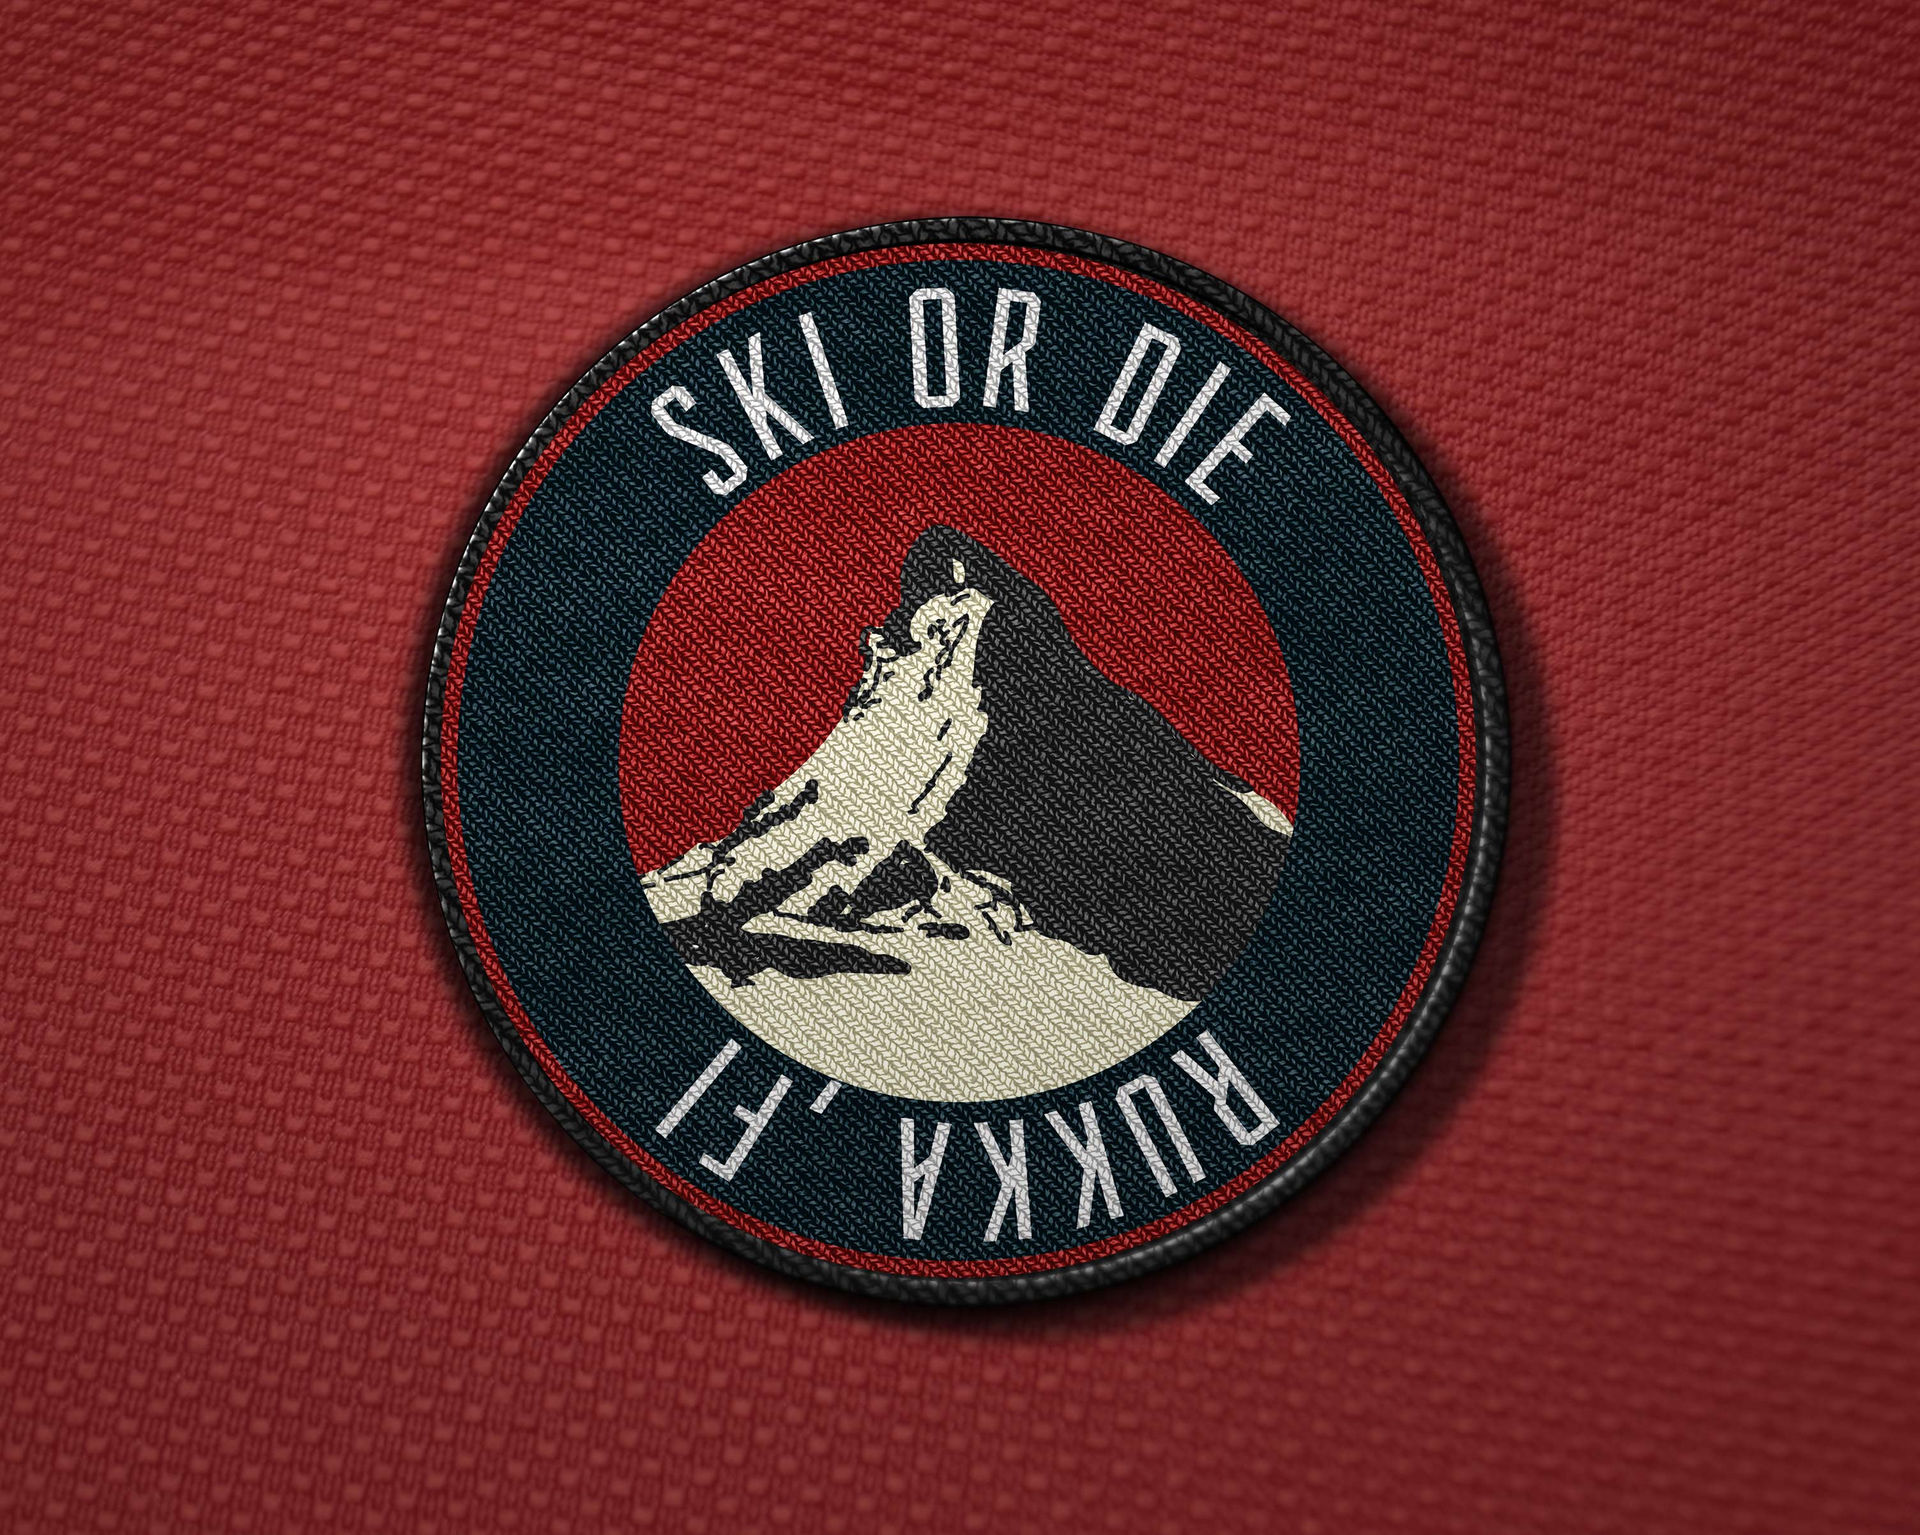 ski or die patch mock up jacket.jpg